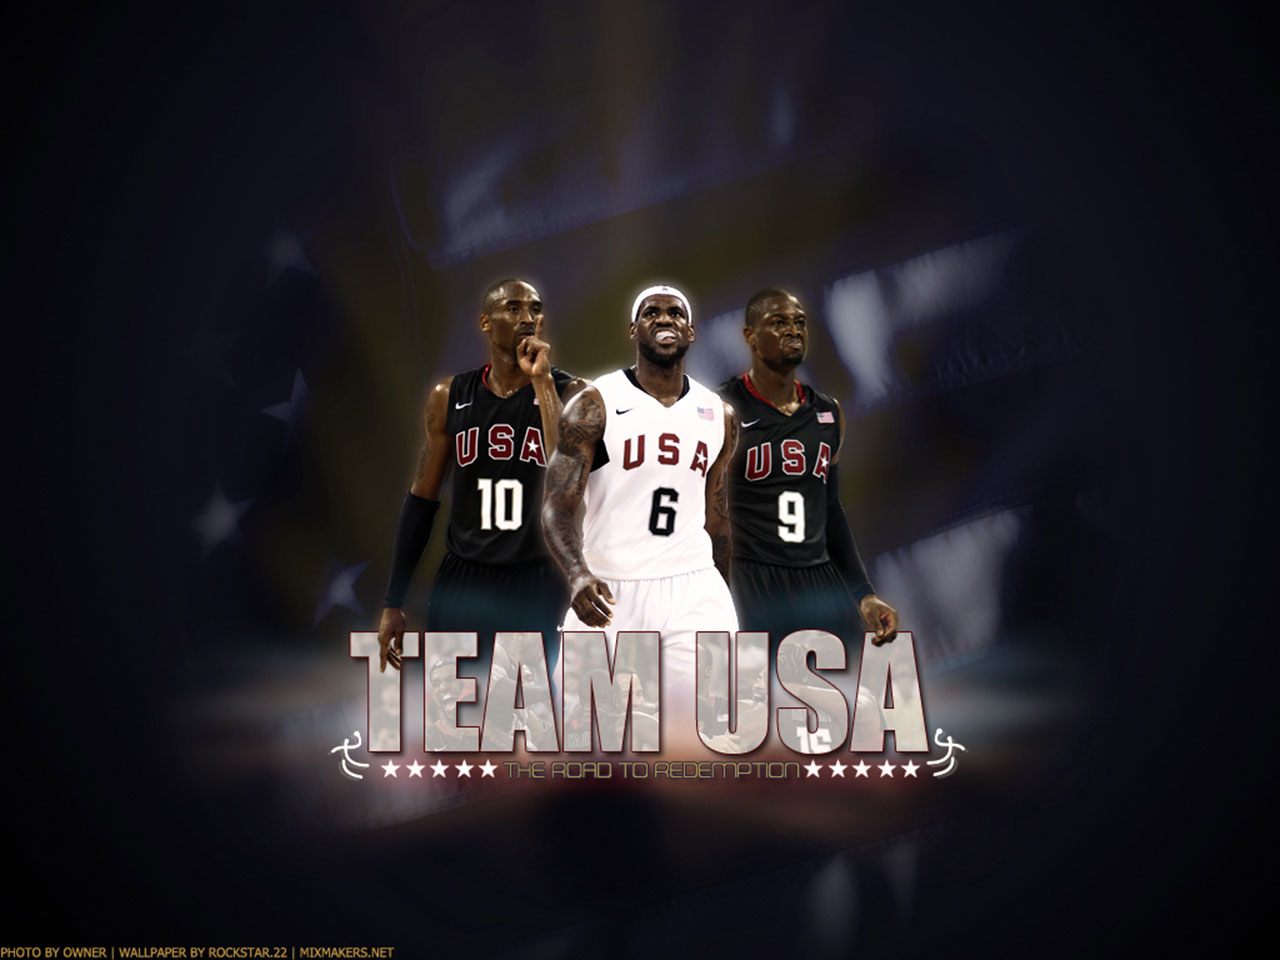 http://3.bp.blogspot.com/-f06rq50MhGE/UP_dvxfBWSI/AAAAAAAAE8k/E52luxEZGF0/s1600/Kobe-King-Wade-Dream-Team-Wallpaper.jpg